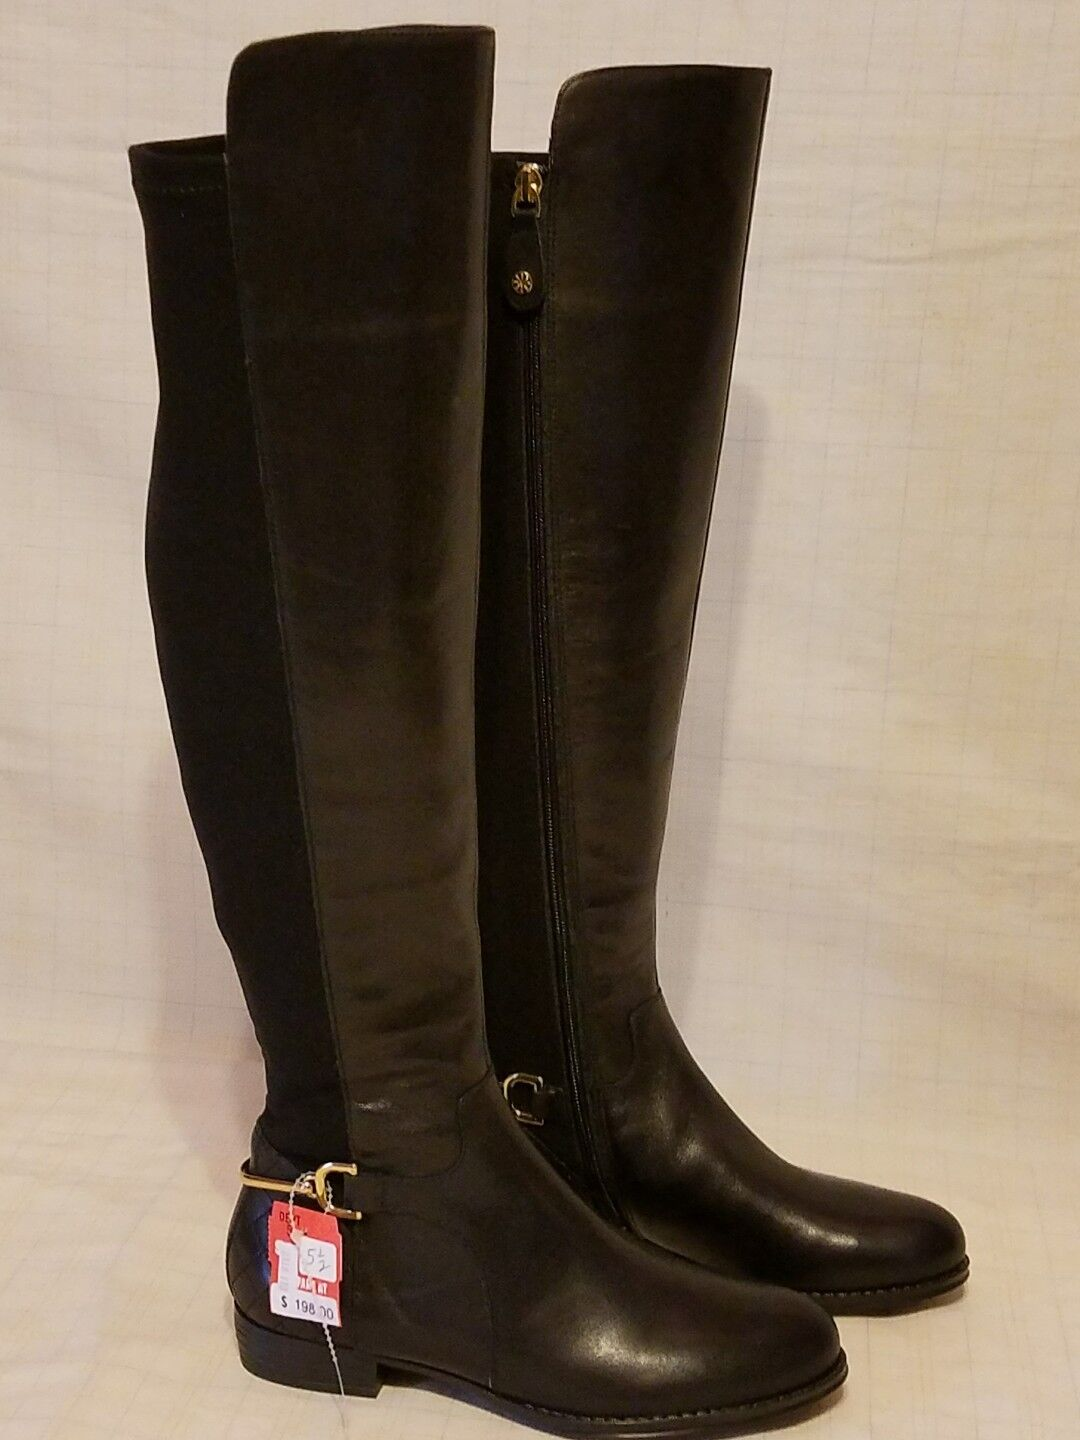 ISAAC MIZRAHI Equestrian Leather Upper IMTORY  Riding Boots - sz 5-1 2 - NWT 198   retail stores